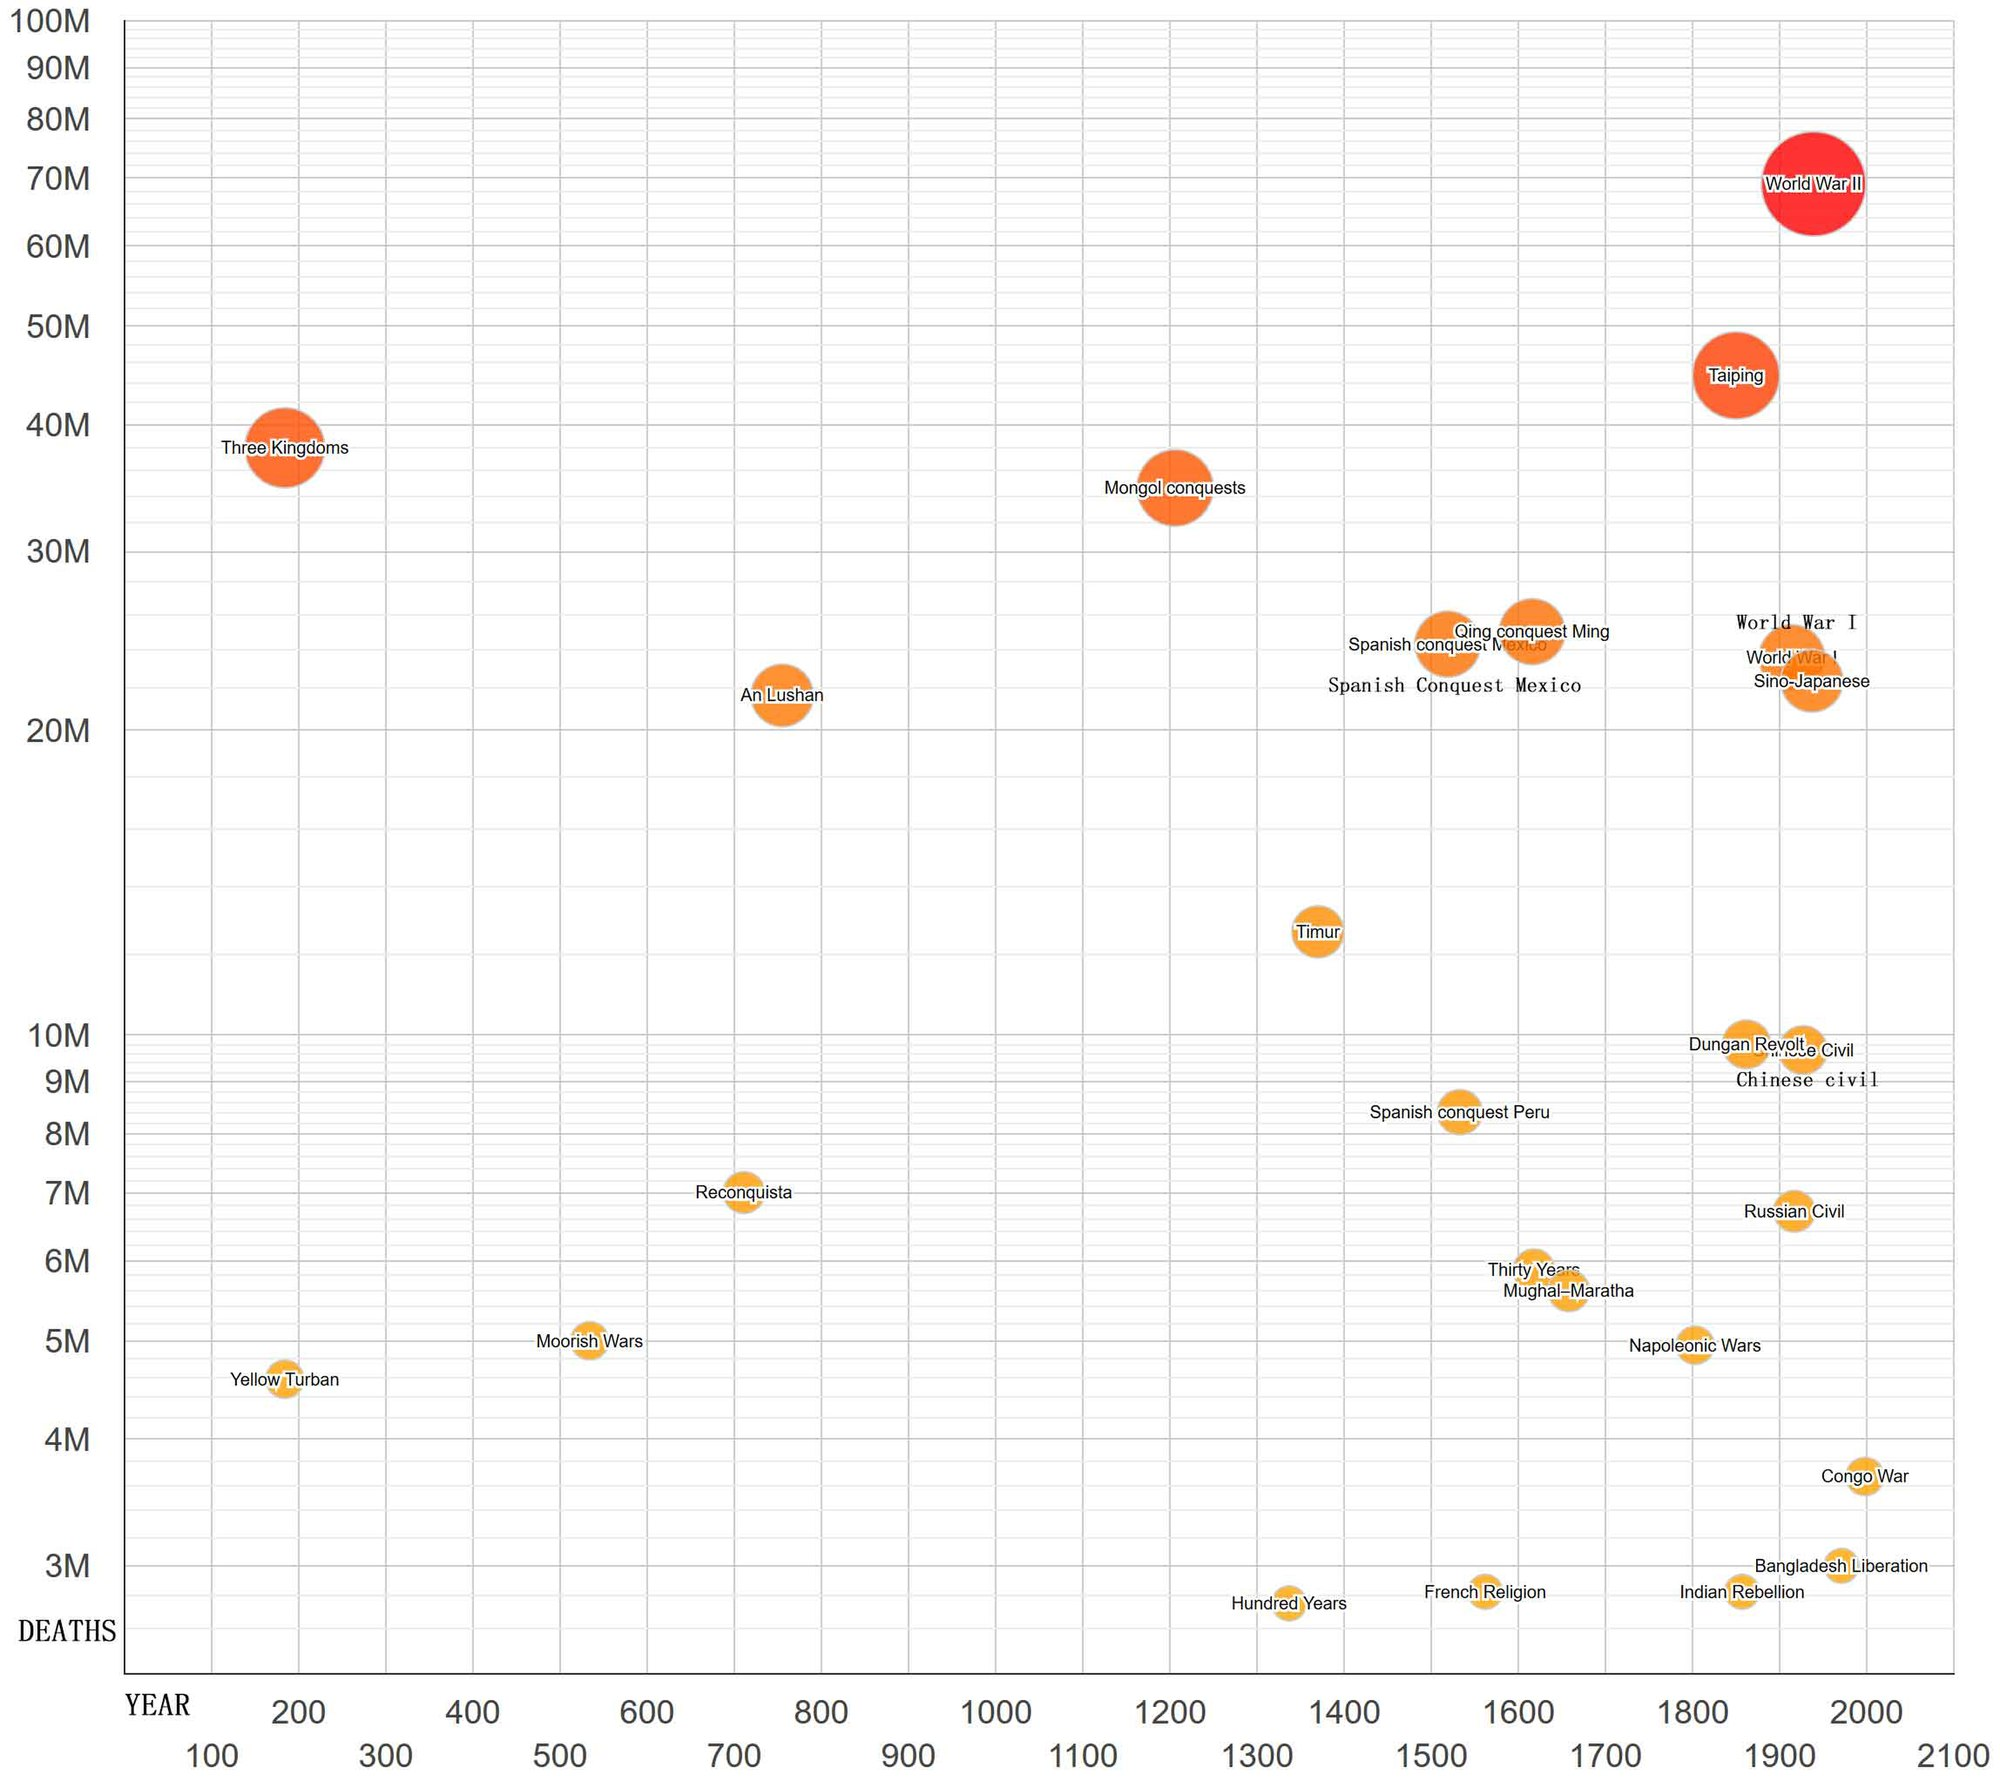 Bubble chart of wars by deaths over 2 million. Wars by Death Toll Chart.jpg